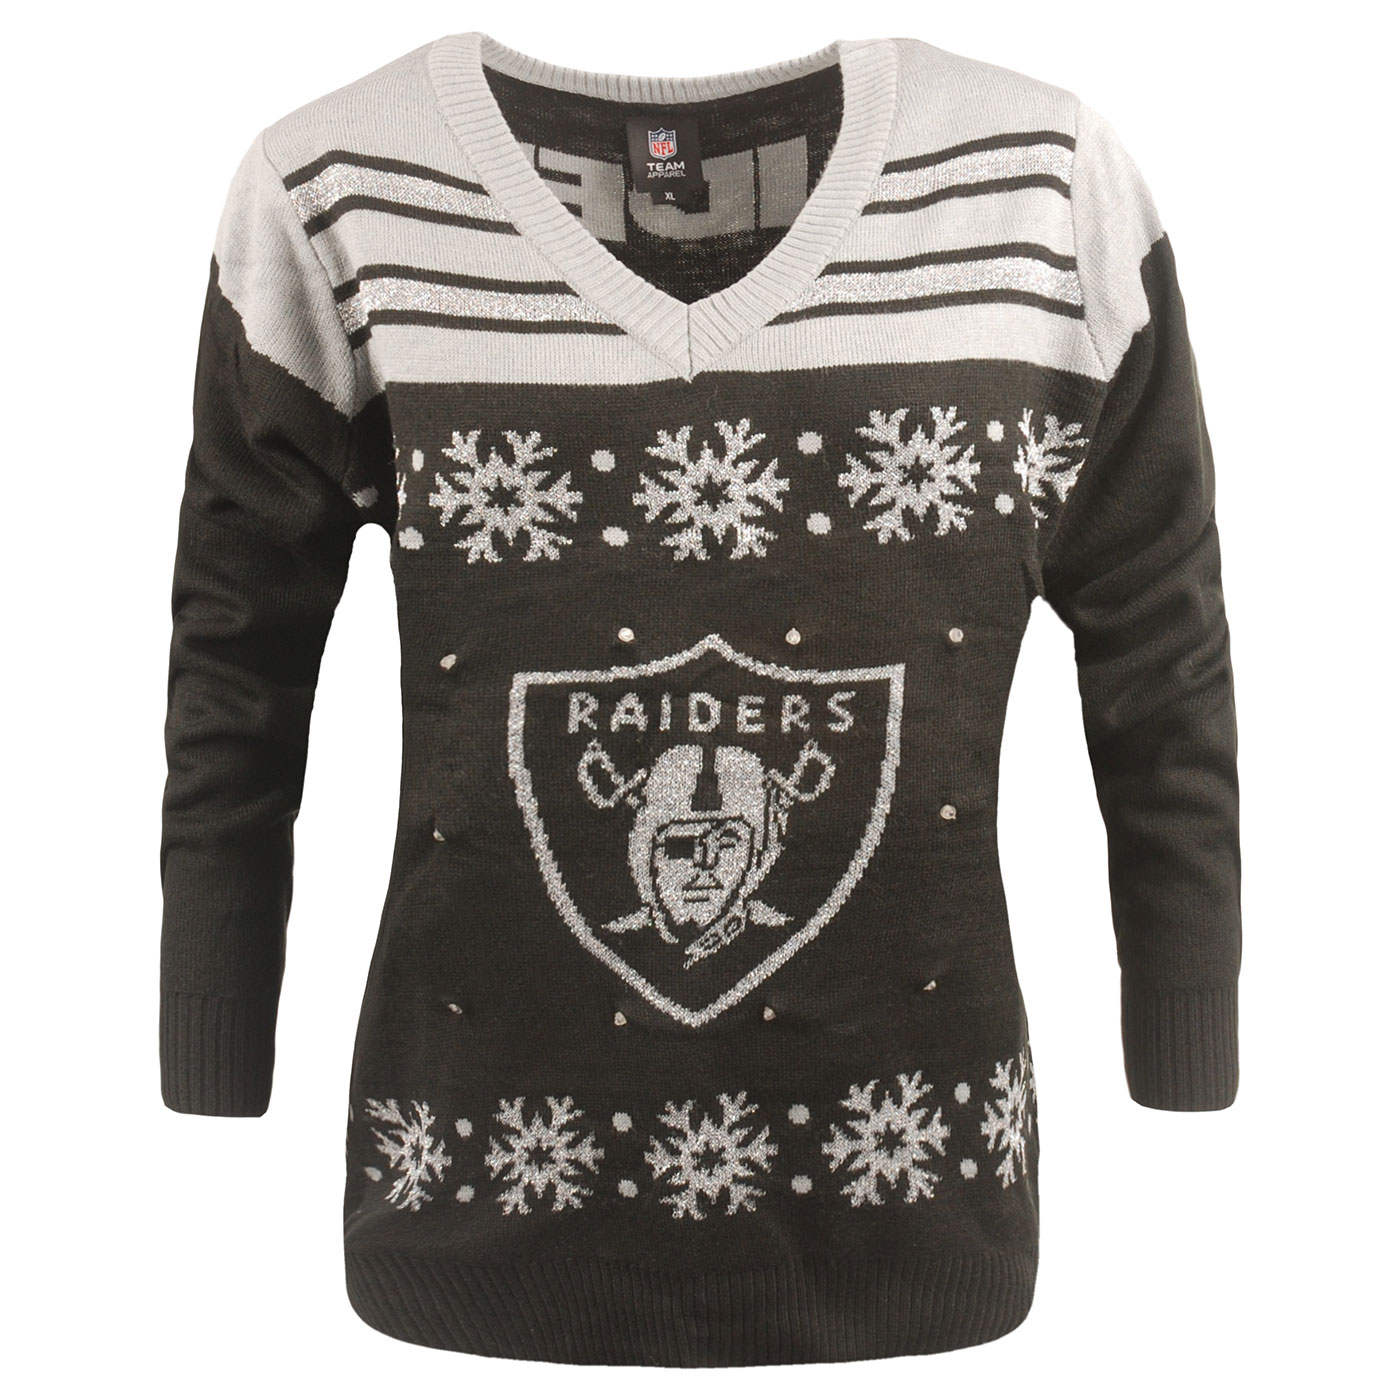 Raider Sweaters Photo Album - Best Fashion Trends and Models